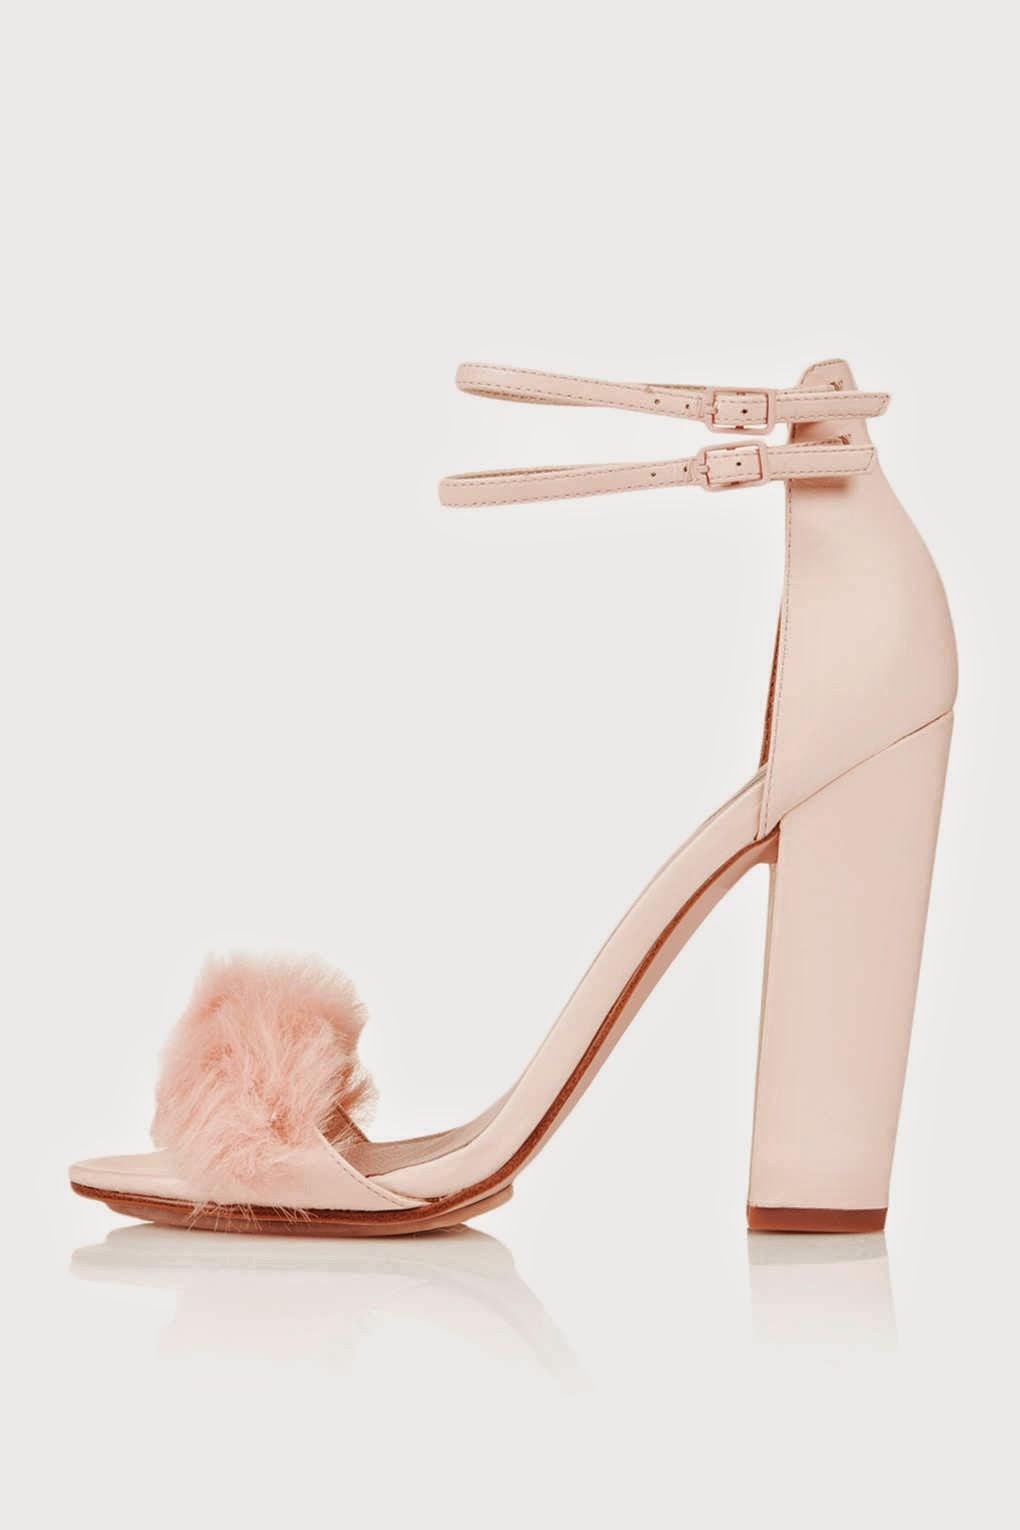 Top Shop Rabbit Fur Fluffy Sandals